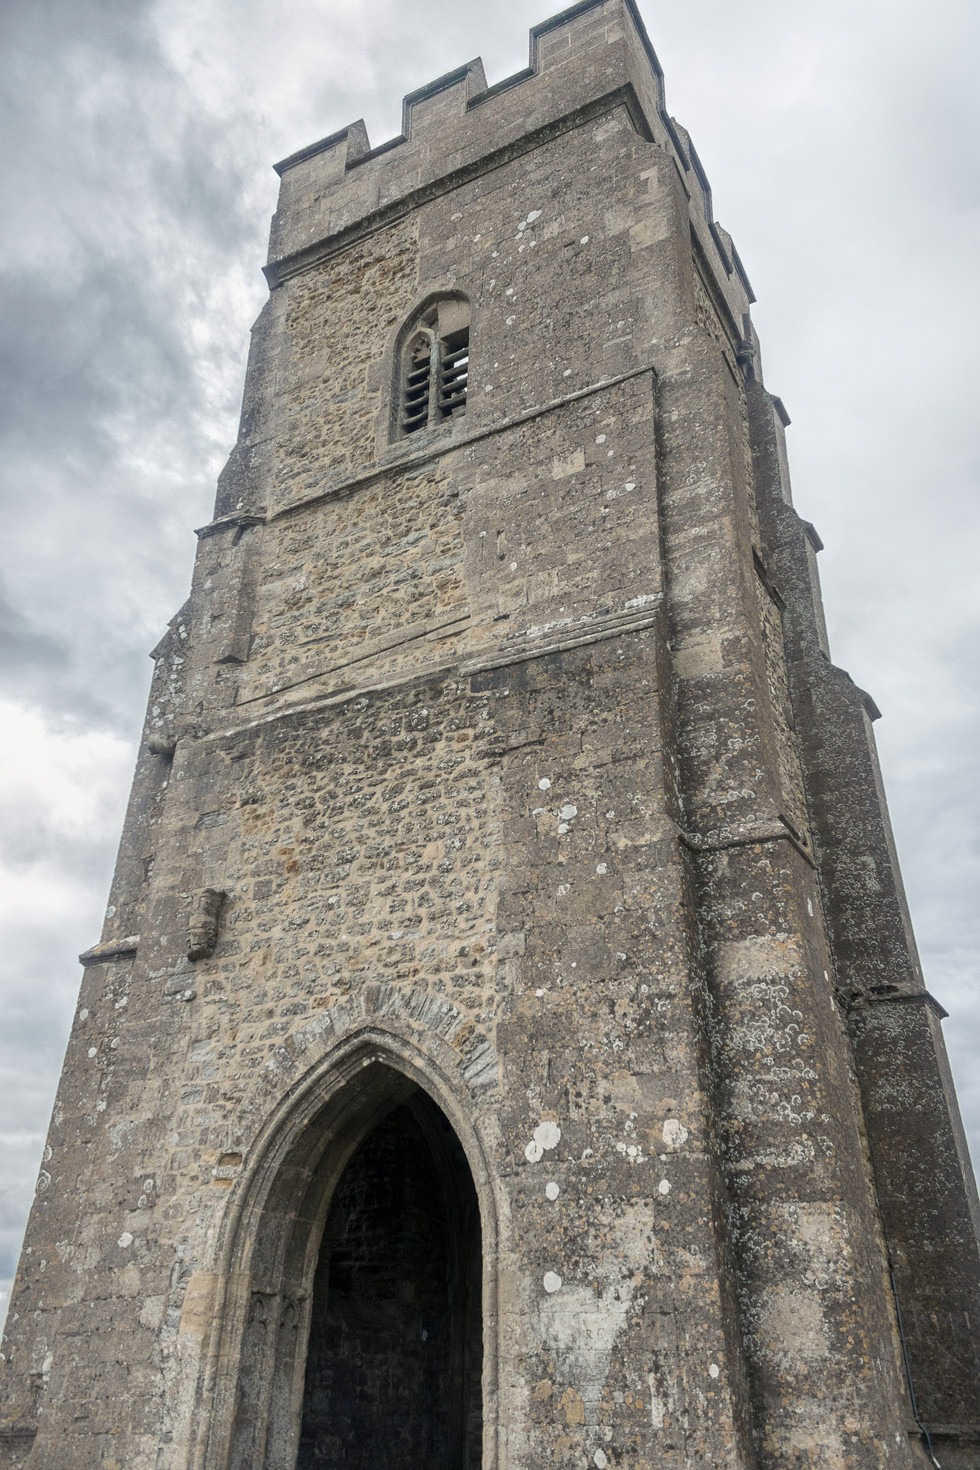 St. Michael's Tower